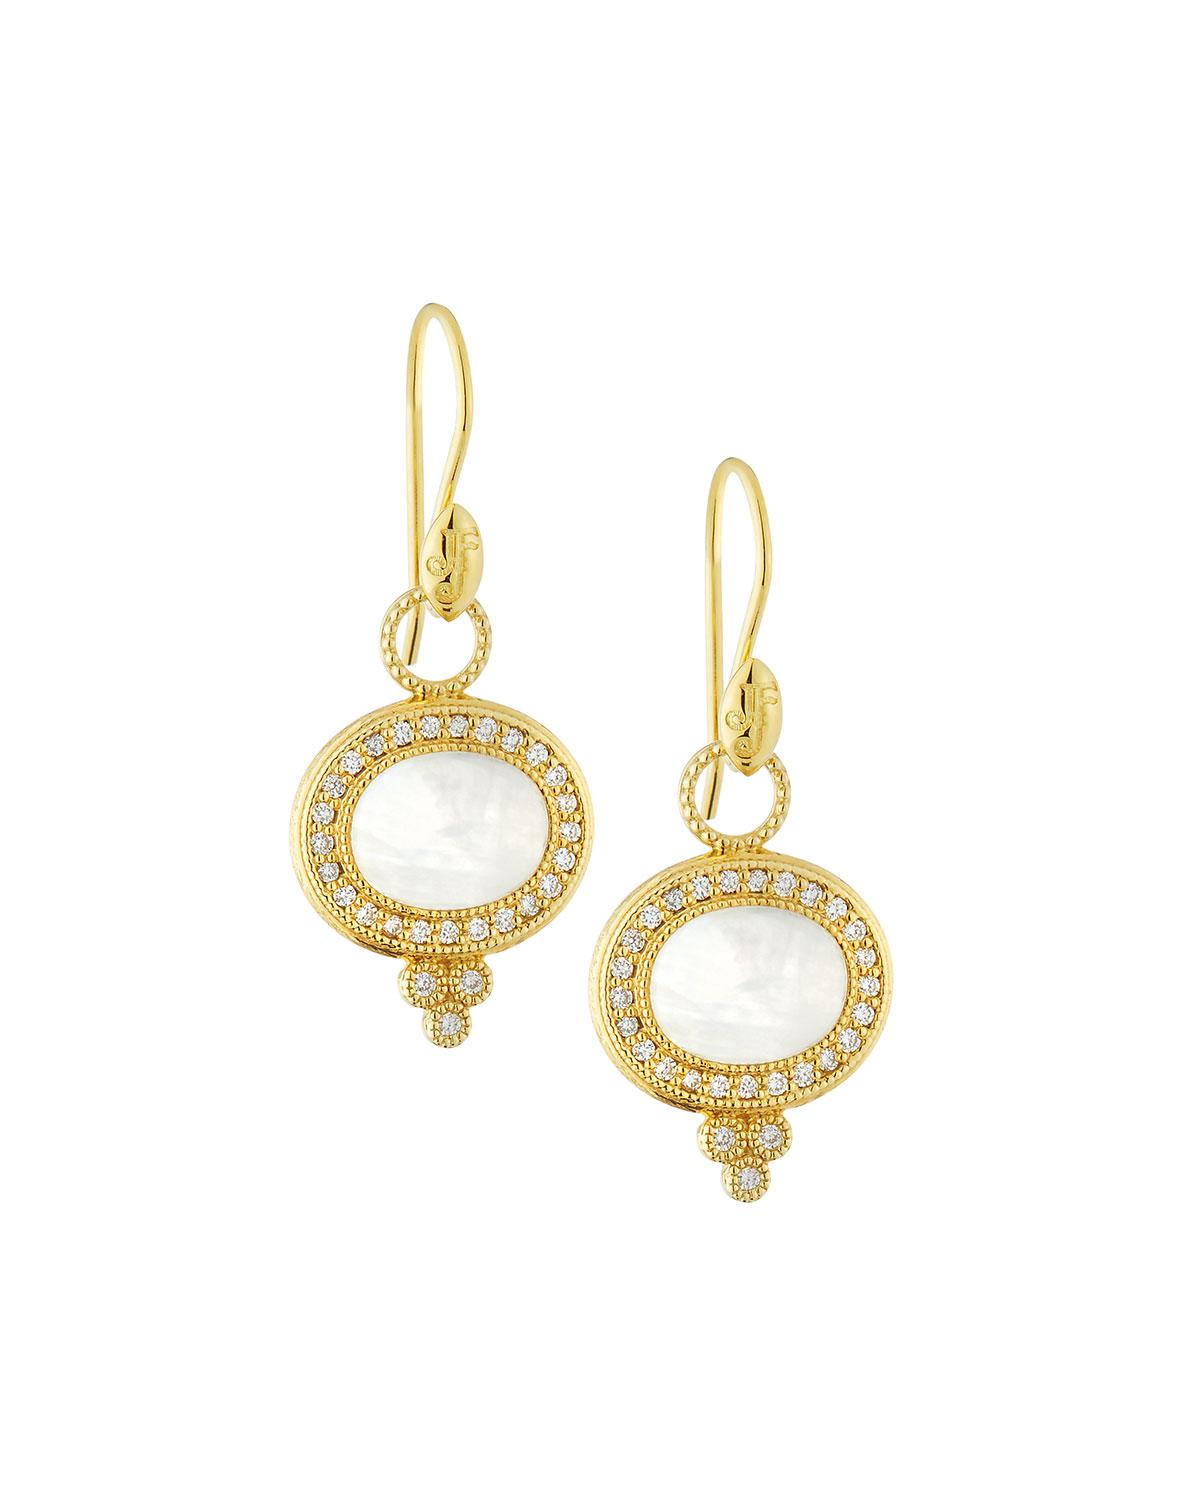 Jude Frances Provence Pearl Drop Earrings in 18K Rose Gold 6S3M6XpK